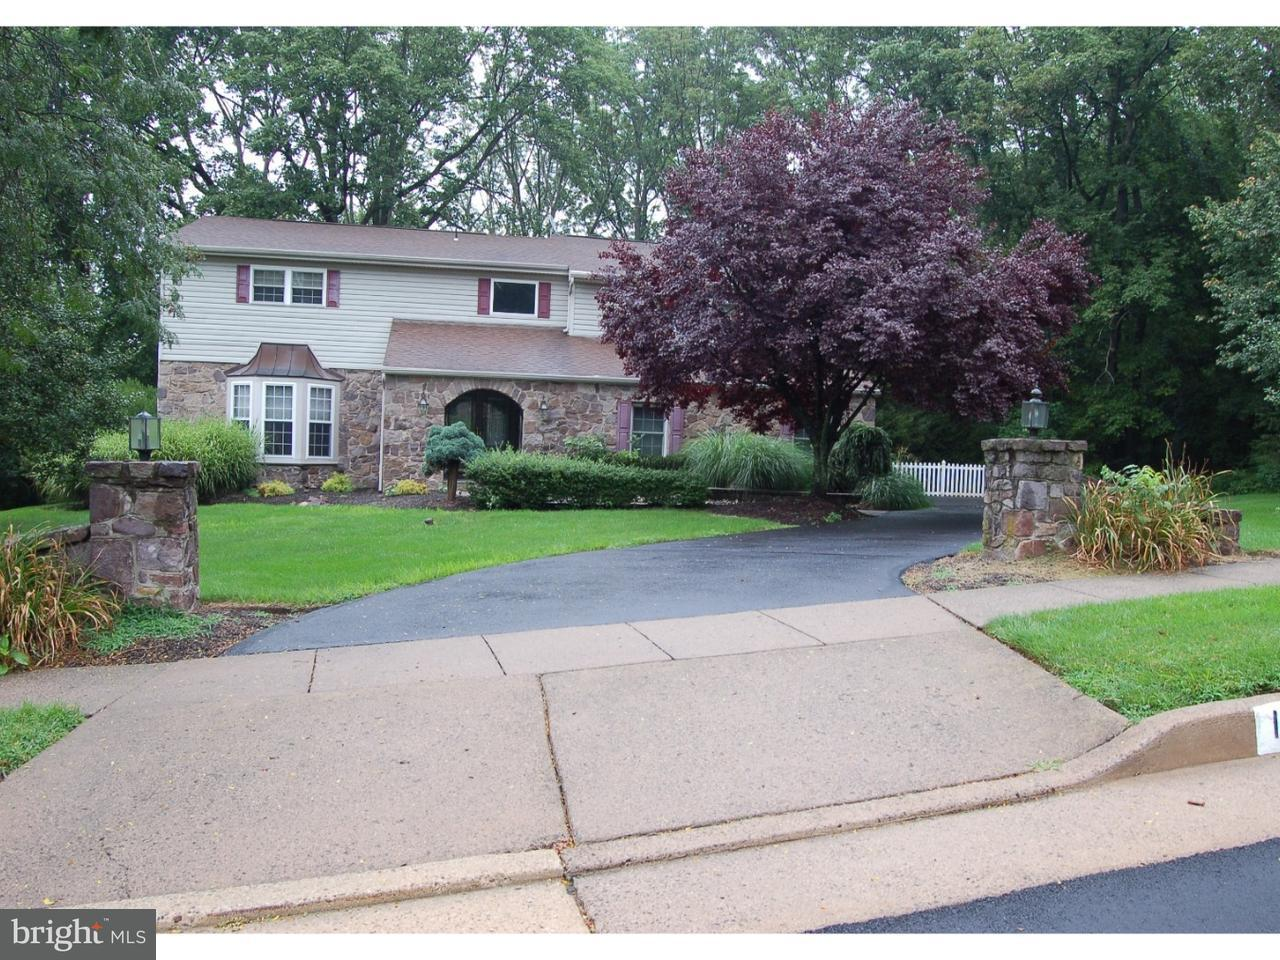 Single Family Home for Rent at 131 JUSTICE Drive Newtown, Pennsylvania 18940 United States